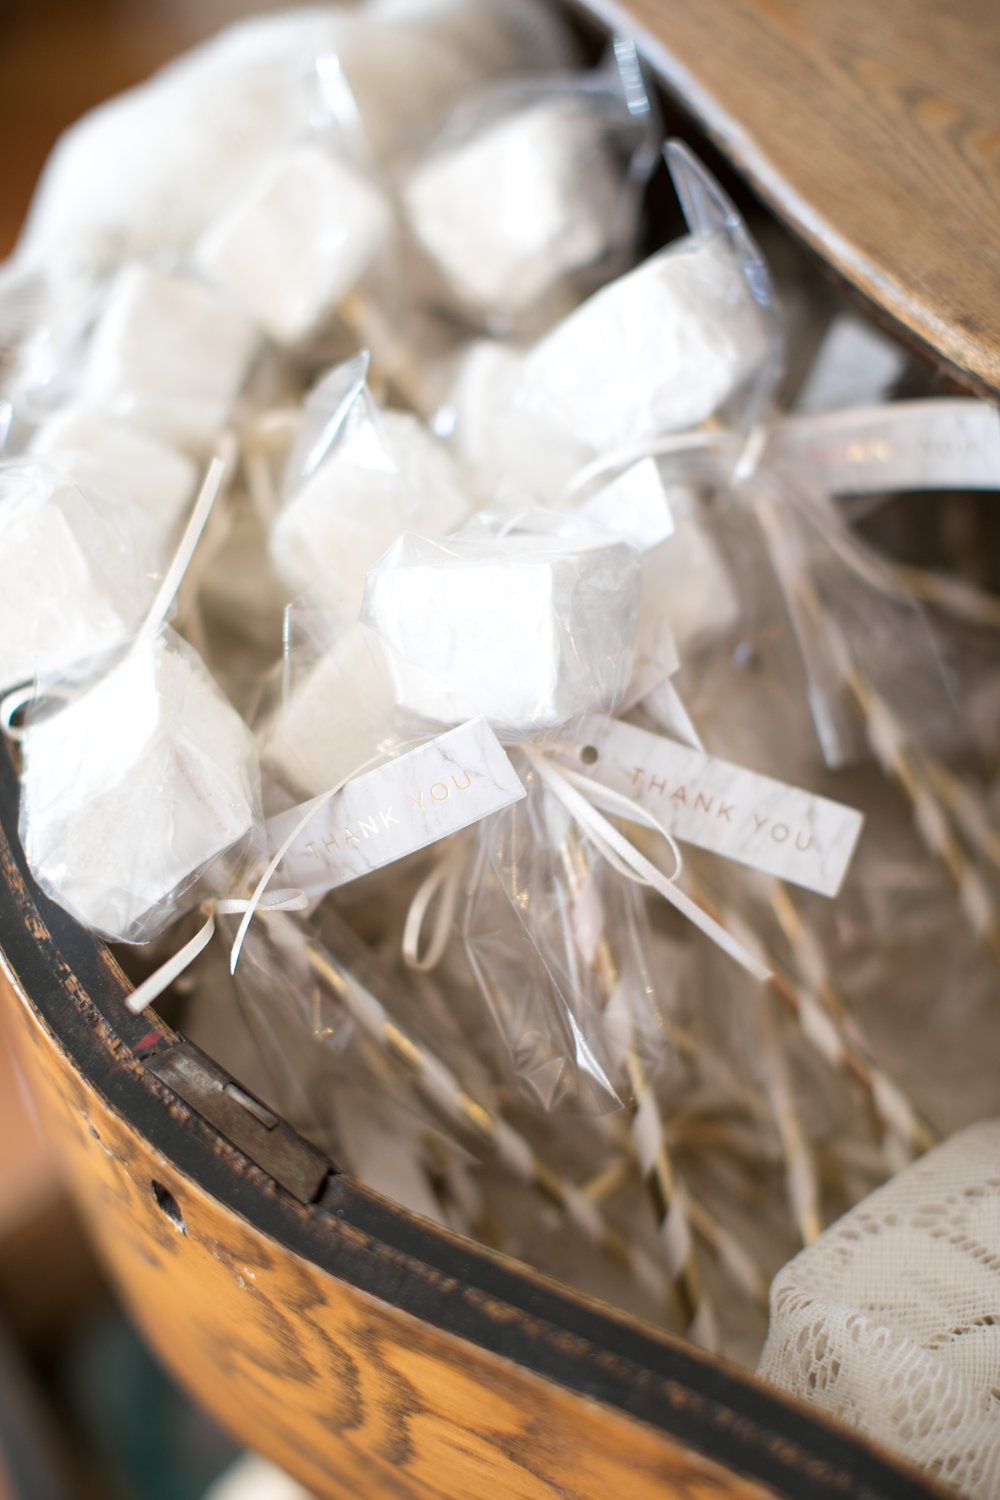 bridal shower favors from fireside s'mores